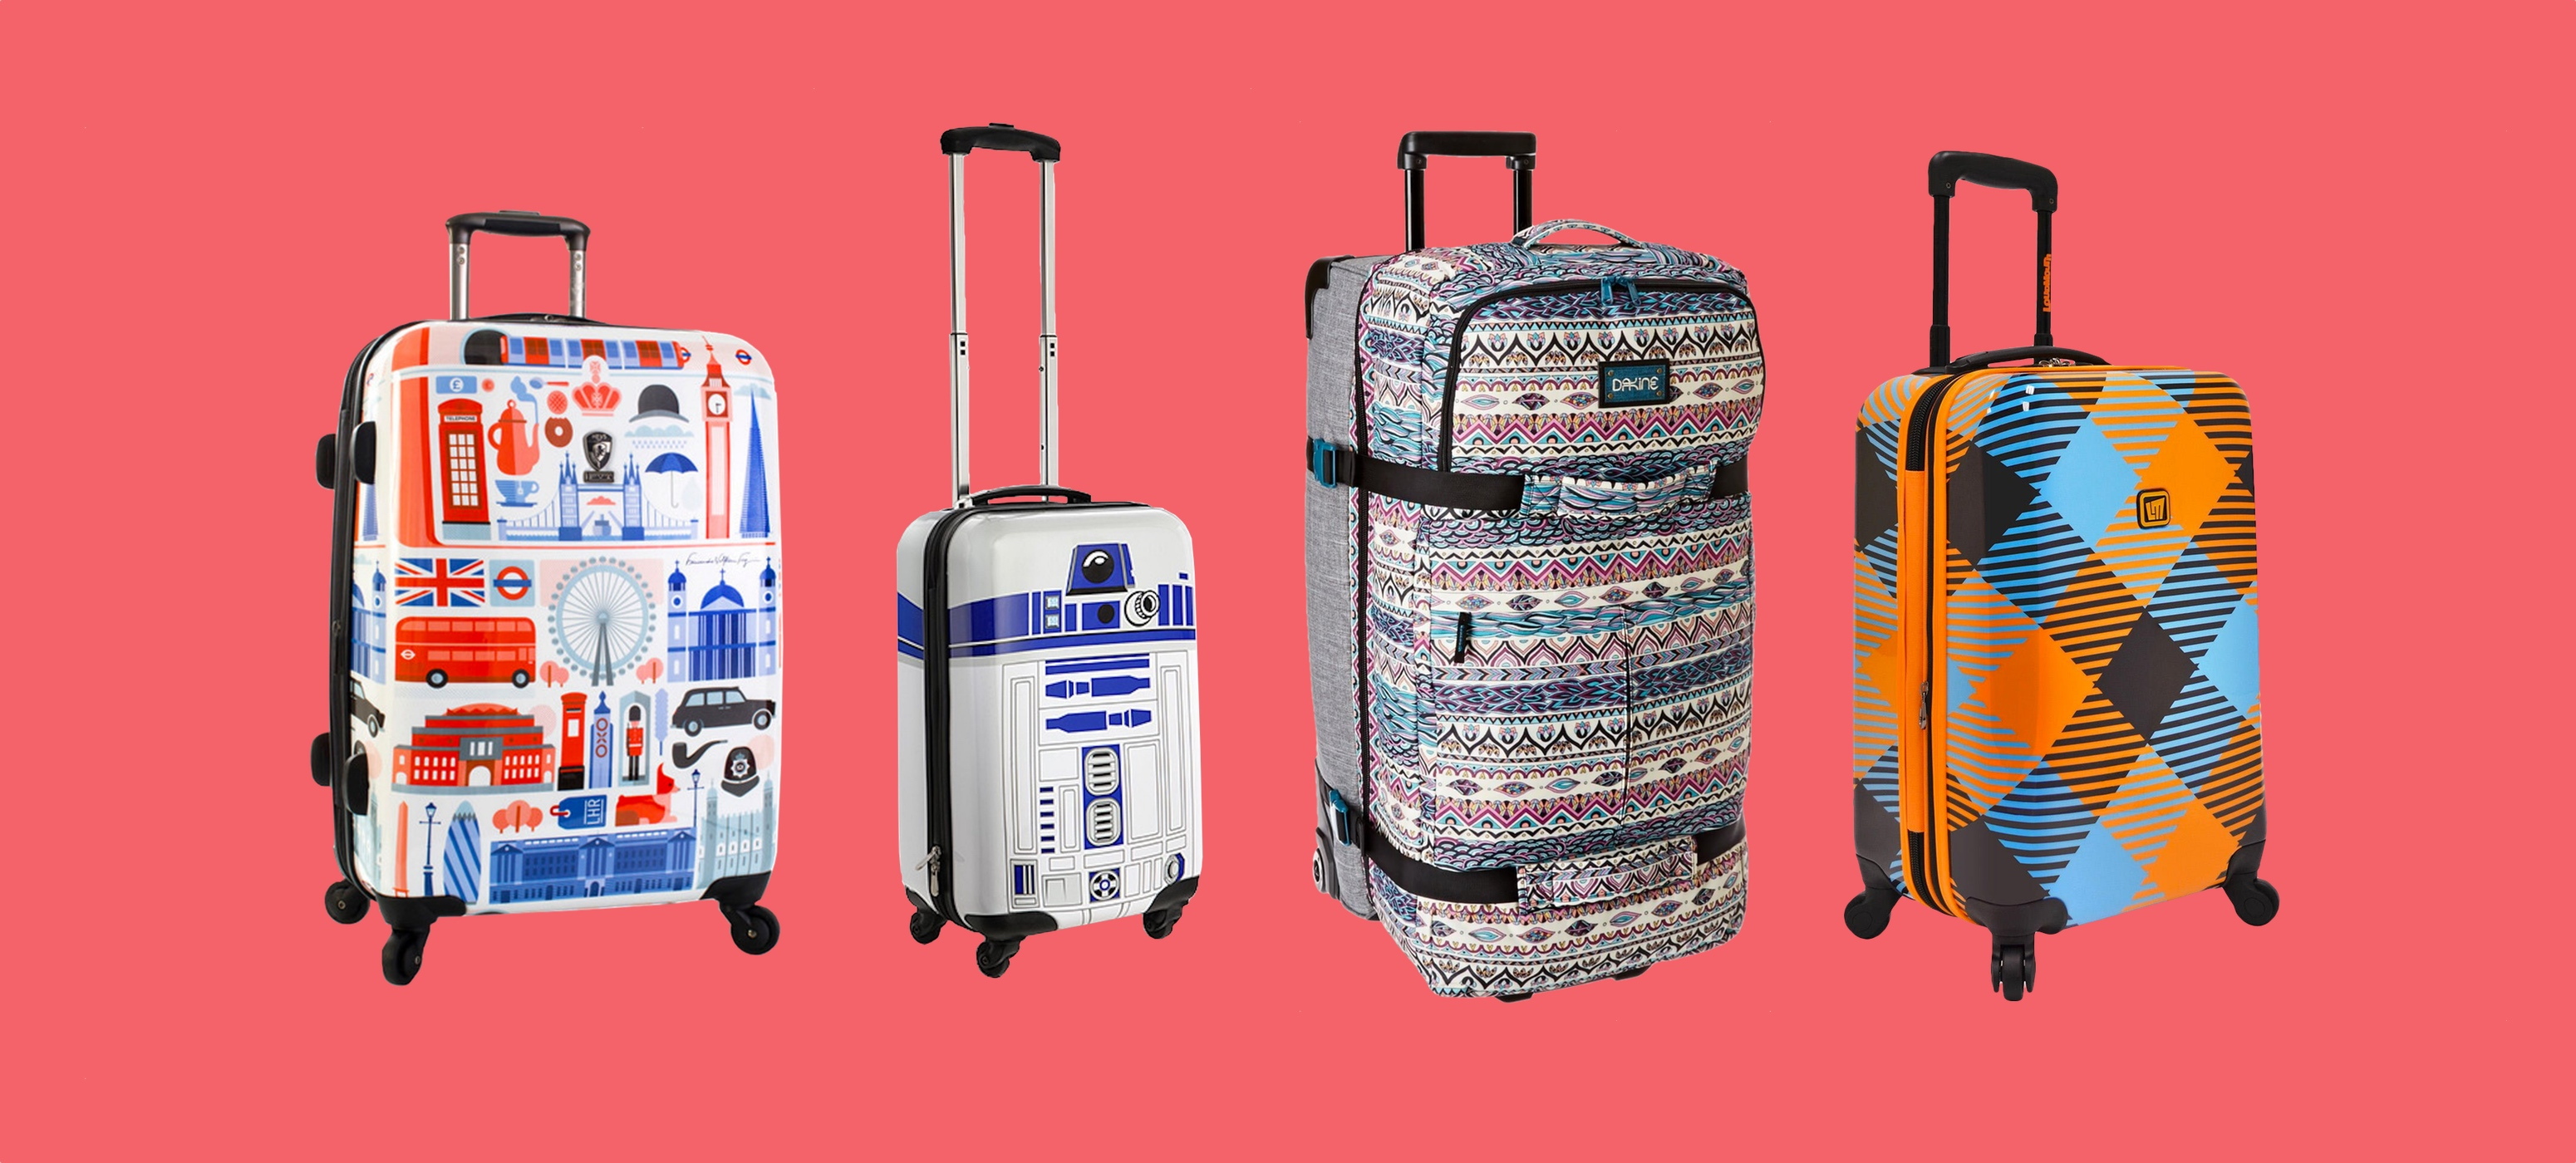 Luggage for Teens  10 Stylish Suitcases for Traveling Teens 810efb6240e00